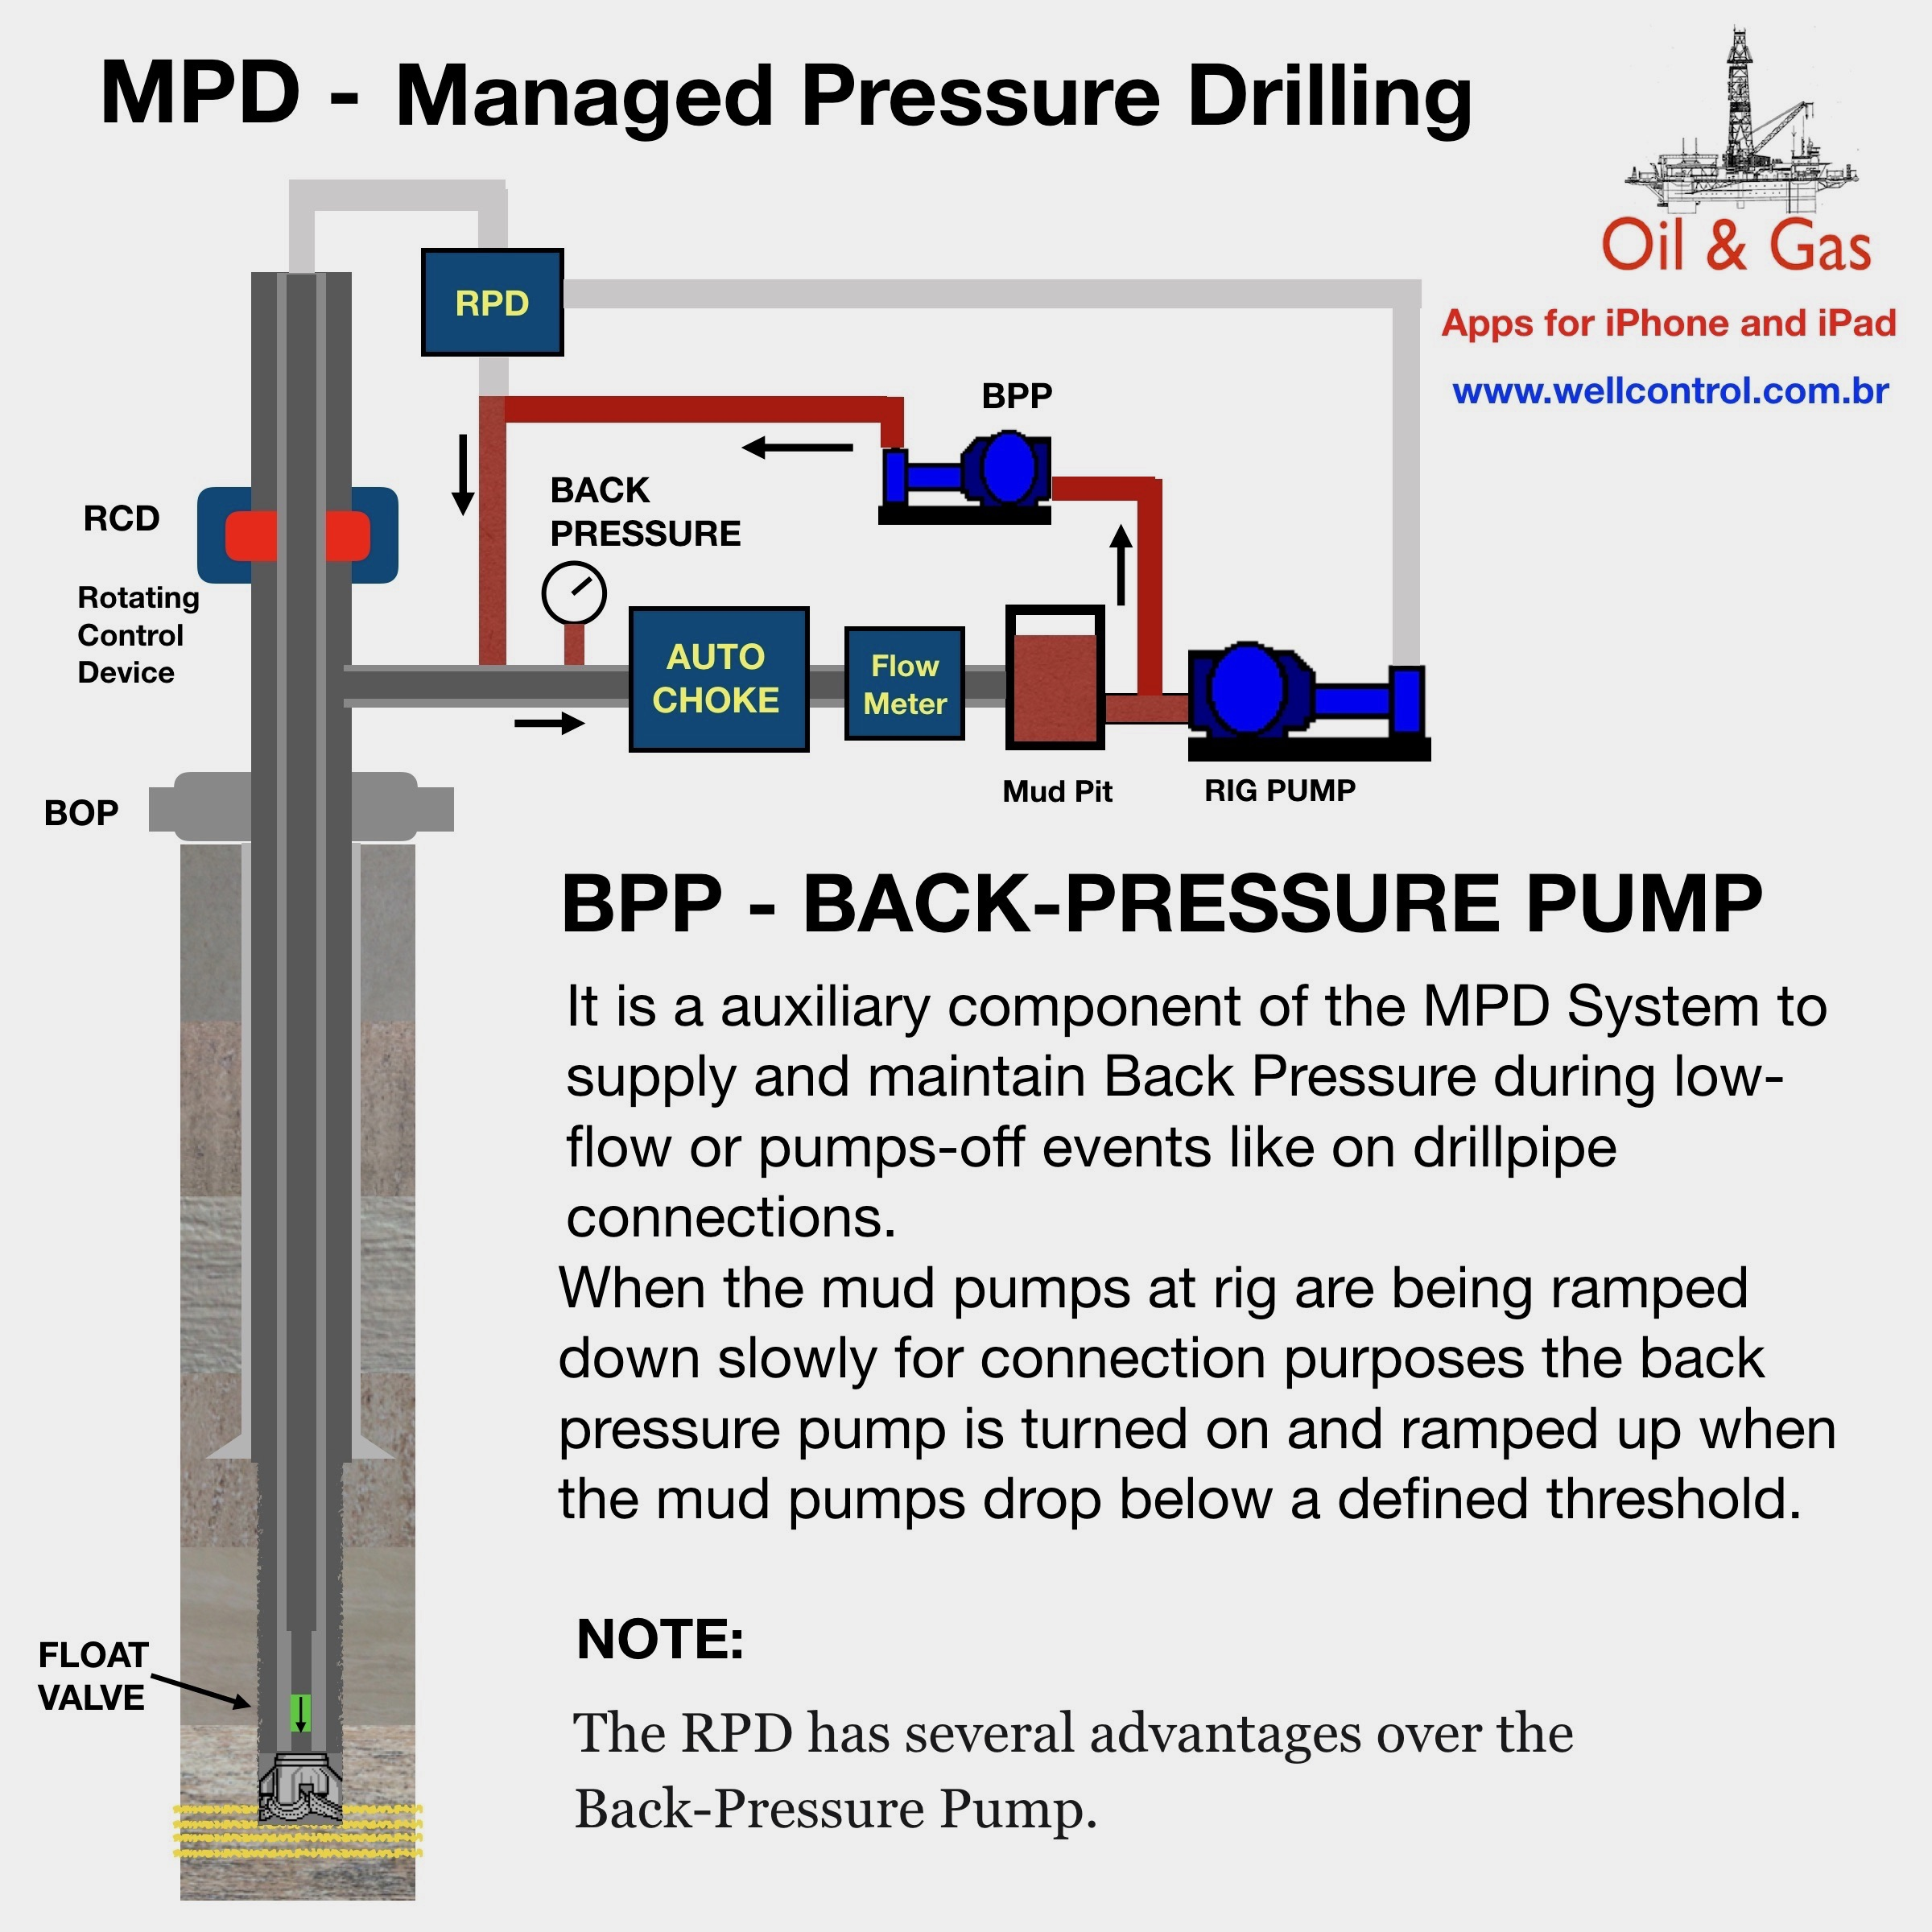 Oil and Gas Softwares - Apps for Drilling and Workover Operations